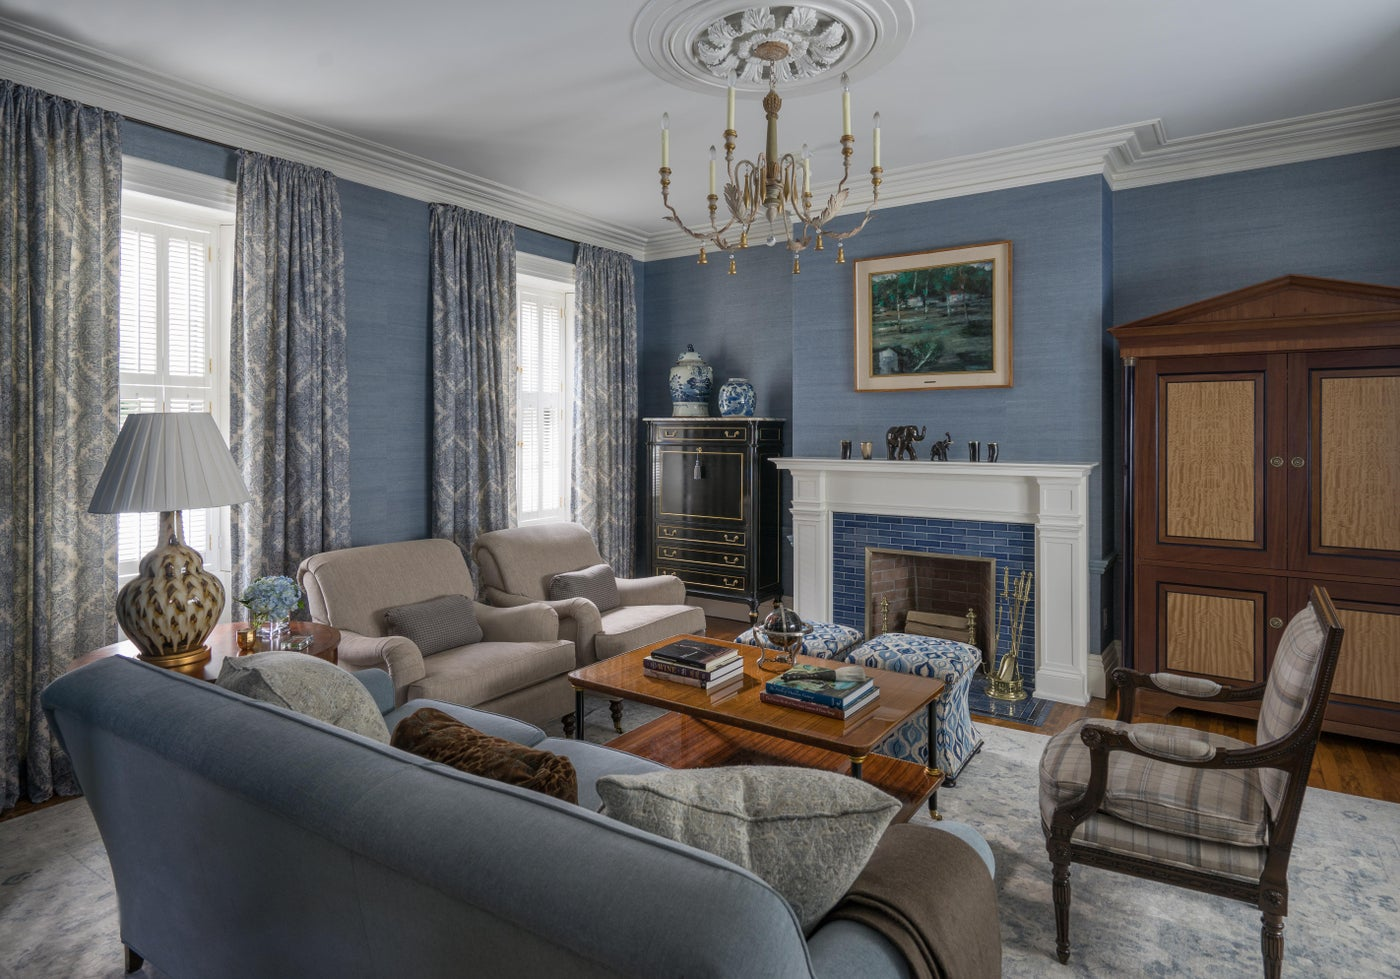 Beacon Hill Family Room with Grasscloth Walls and Swedish Chandelier